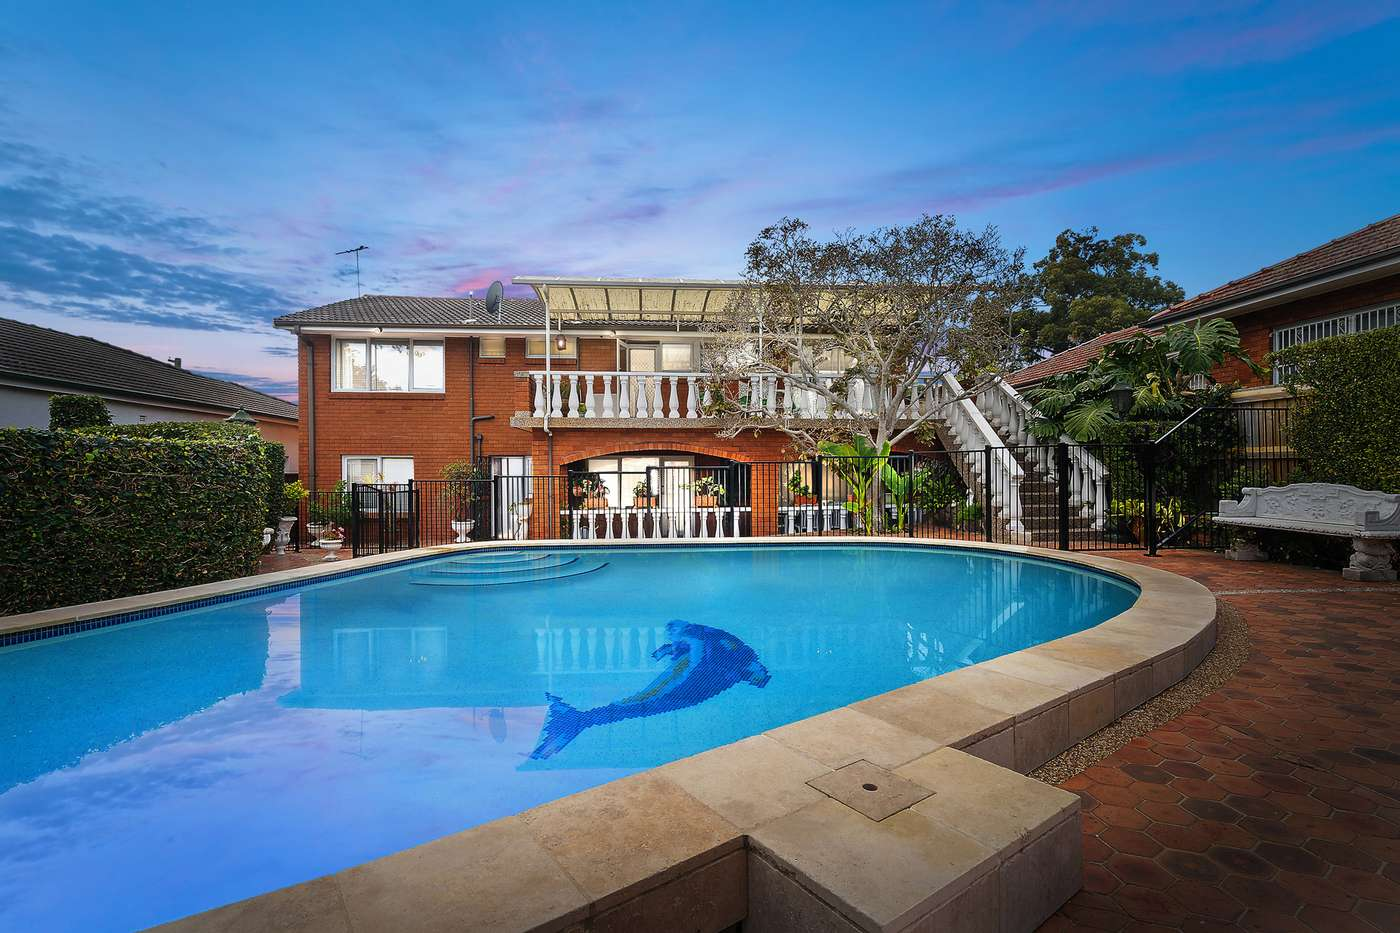 Main view of Homely house listing, 51 Tahlee Street, Burwood, NSW 2134